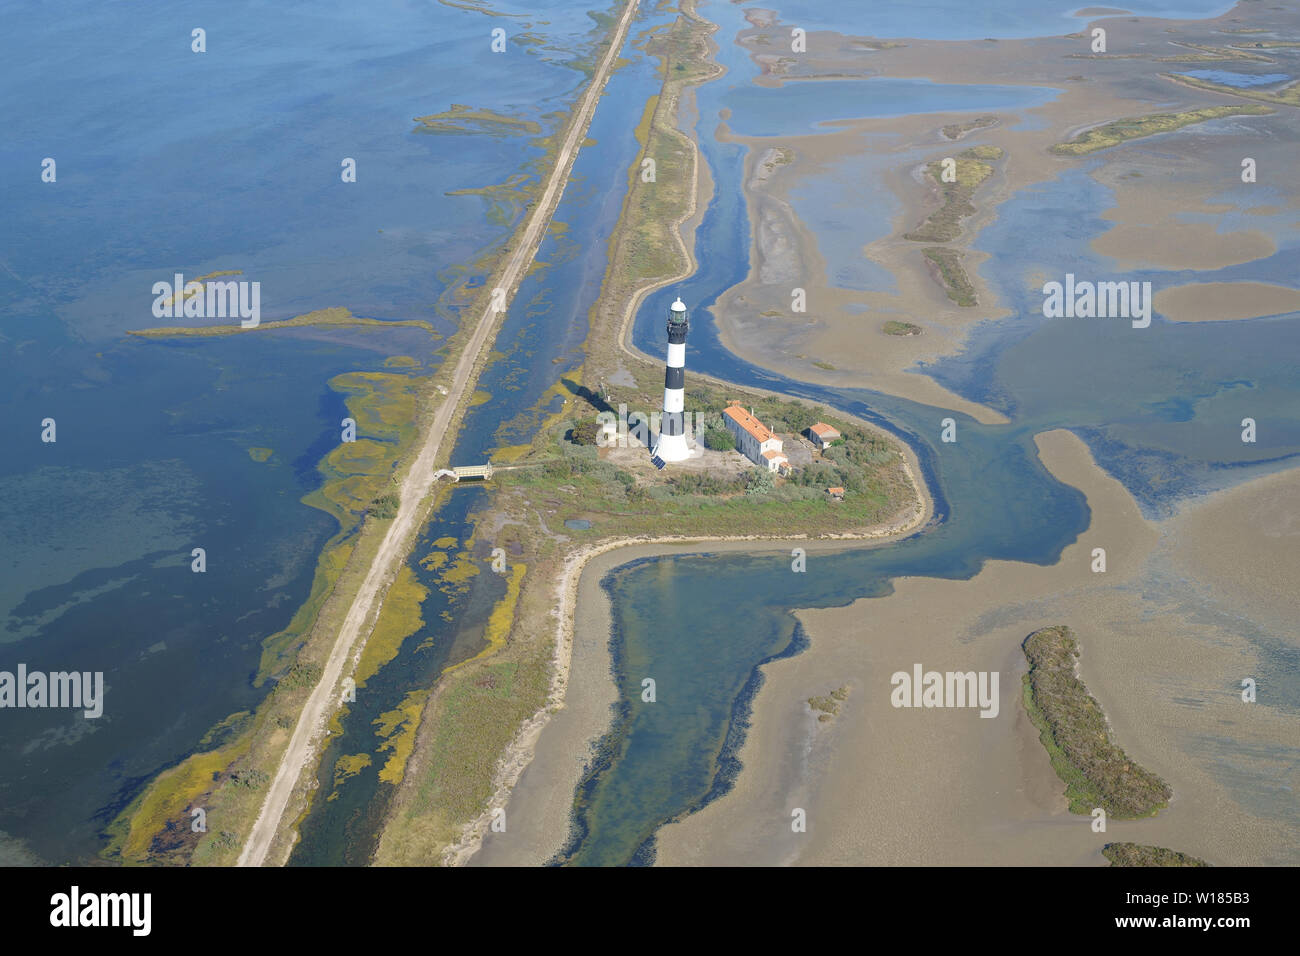 FARAMAN LIGHTHOUSE ON THE SEASHORE OF THE CAMARGUE REGION IN THE RHONE DELTA (height: 43m) (aerial view). Arles, Provence, France. - Stock Image